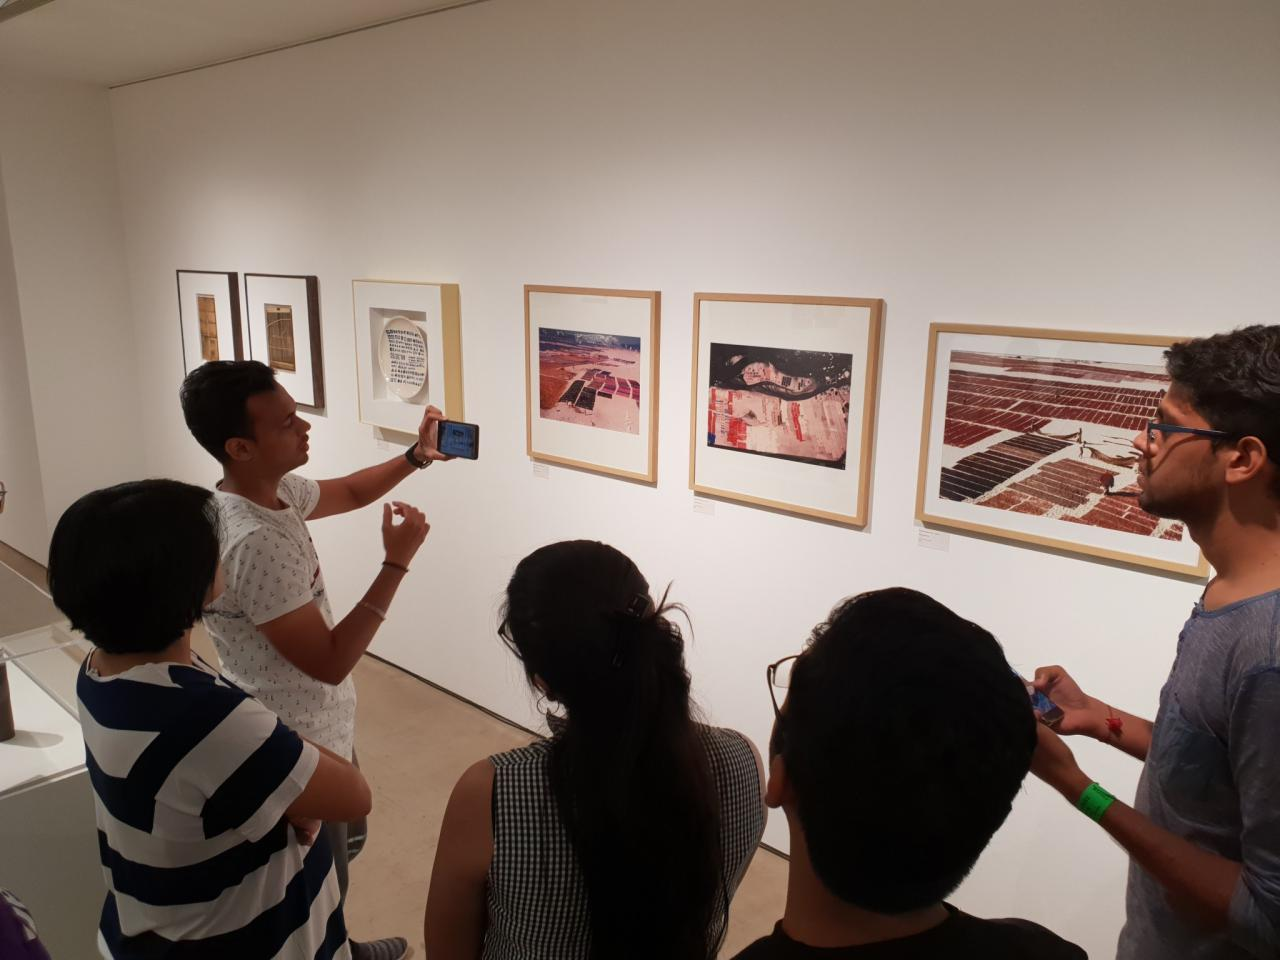 A group of young people looking at art hanging on the wall.